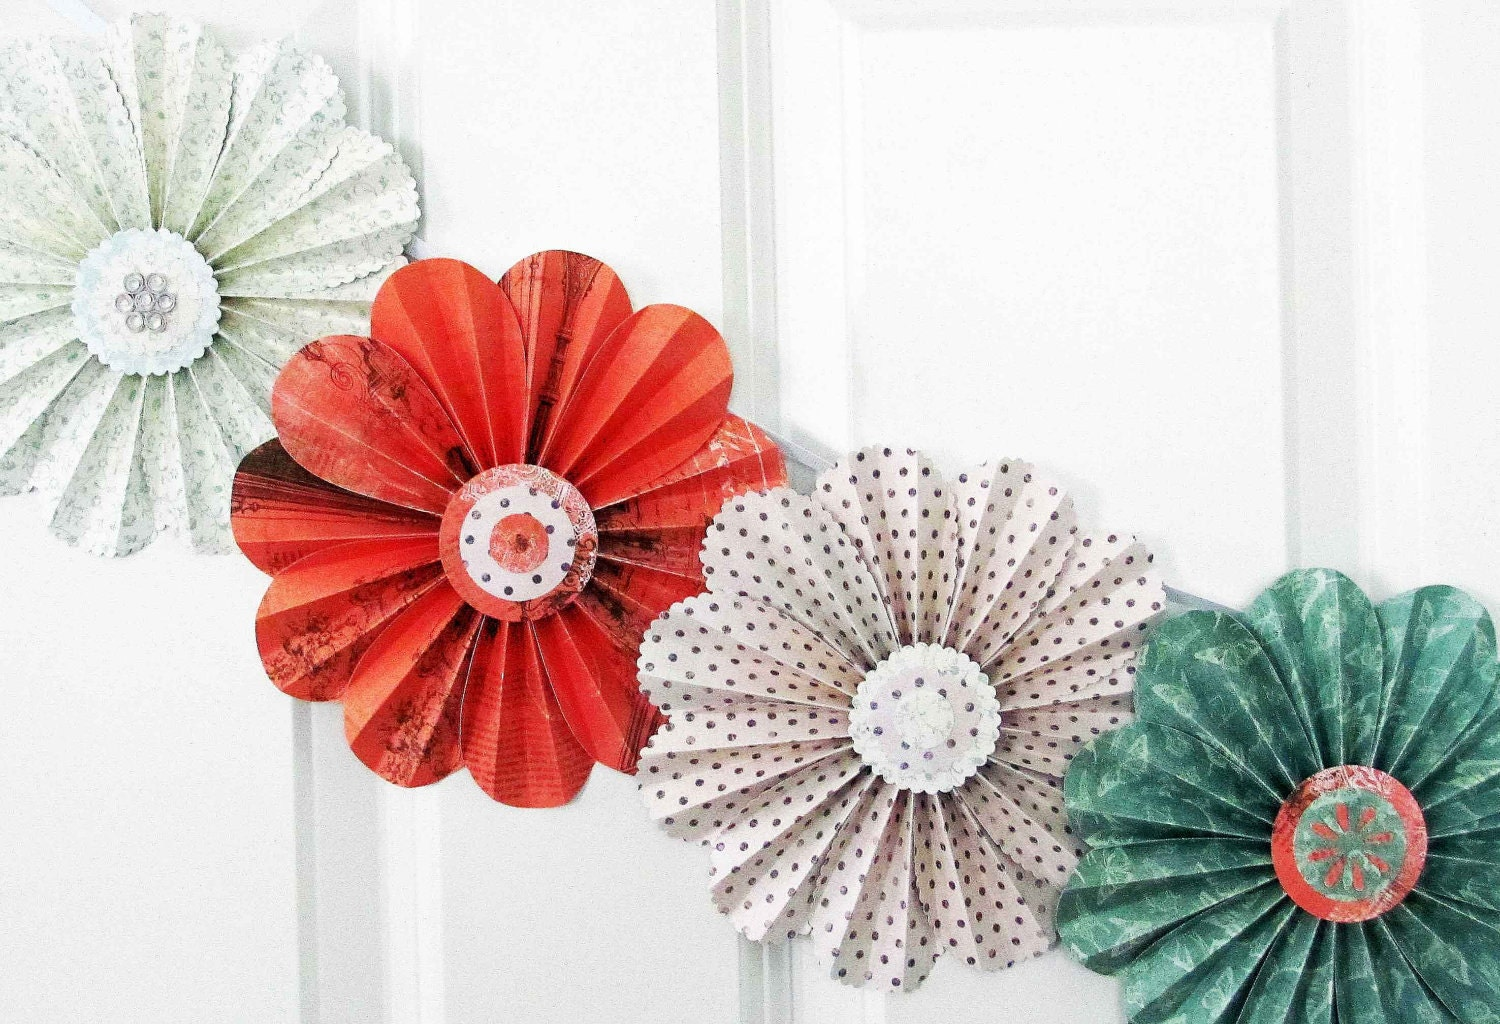 Paper flowers floral garland party decor home wall decor for Floral decorations for home